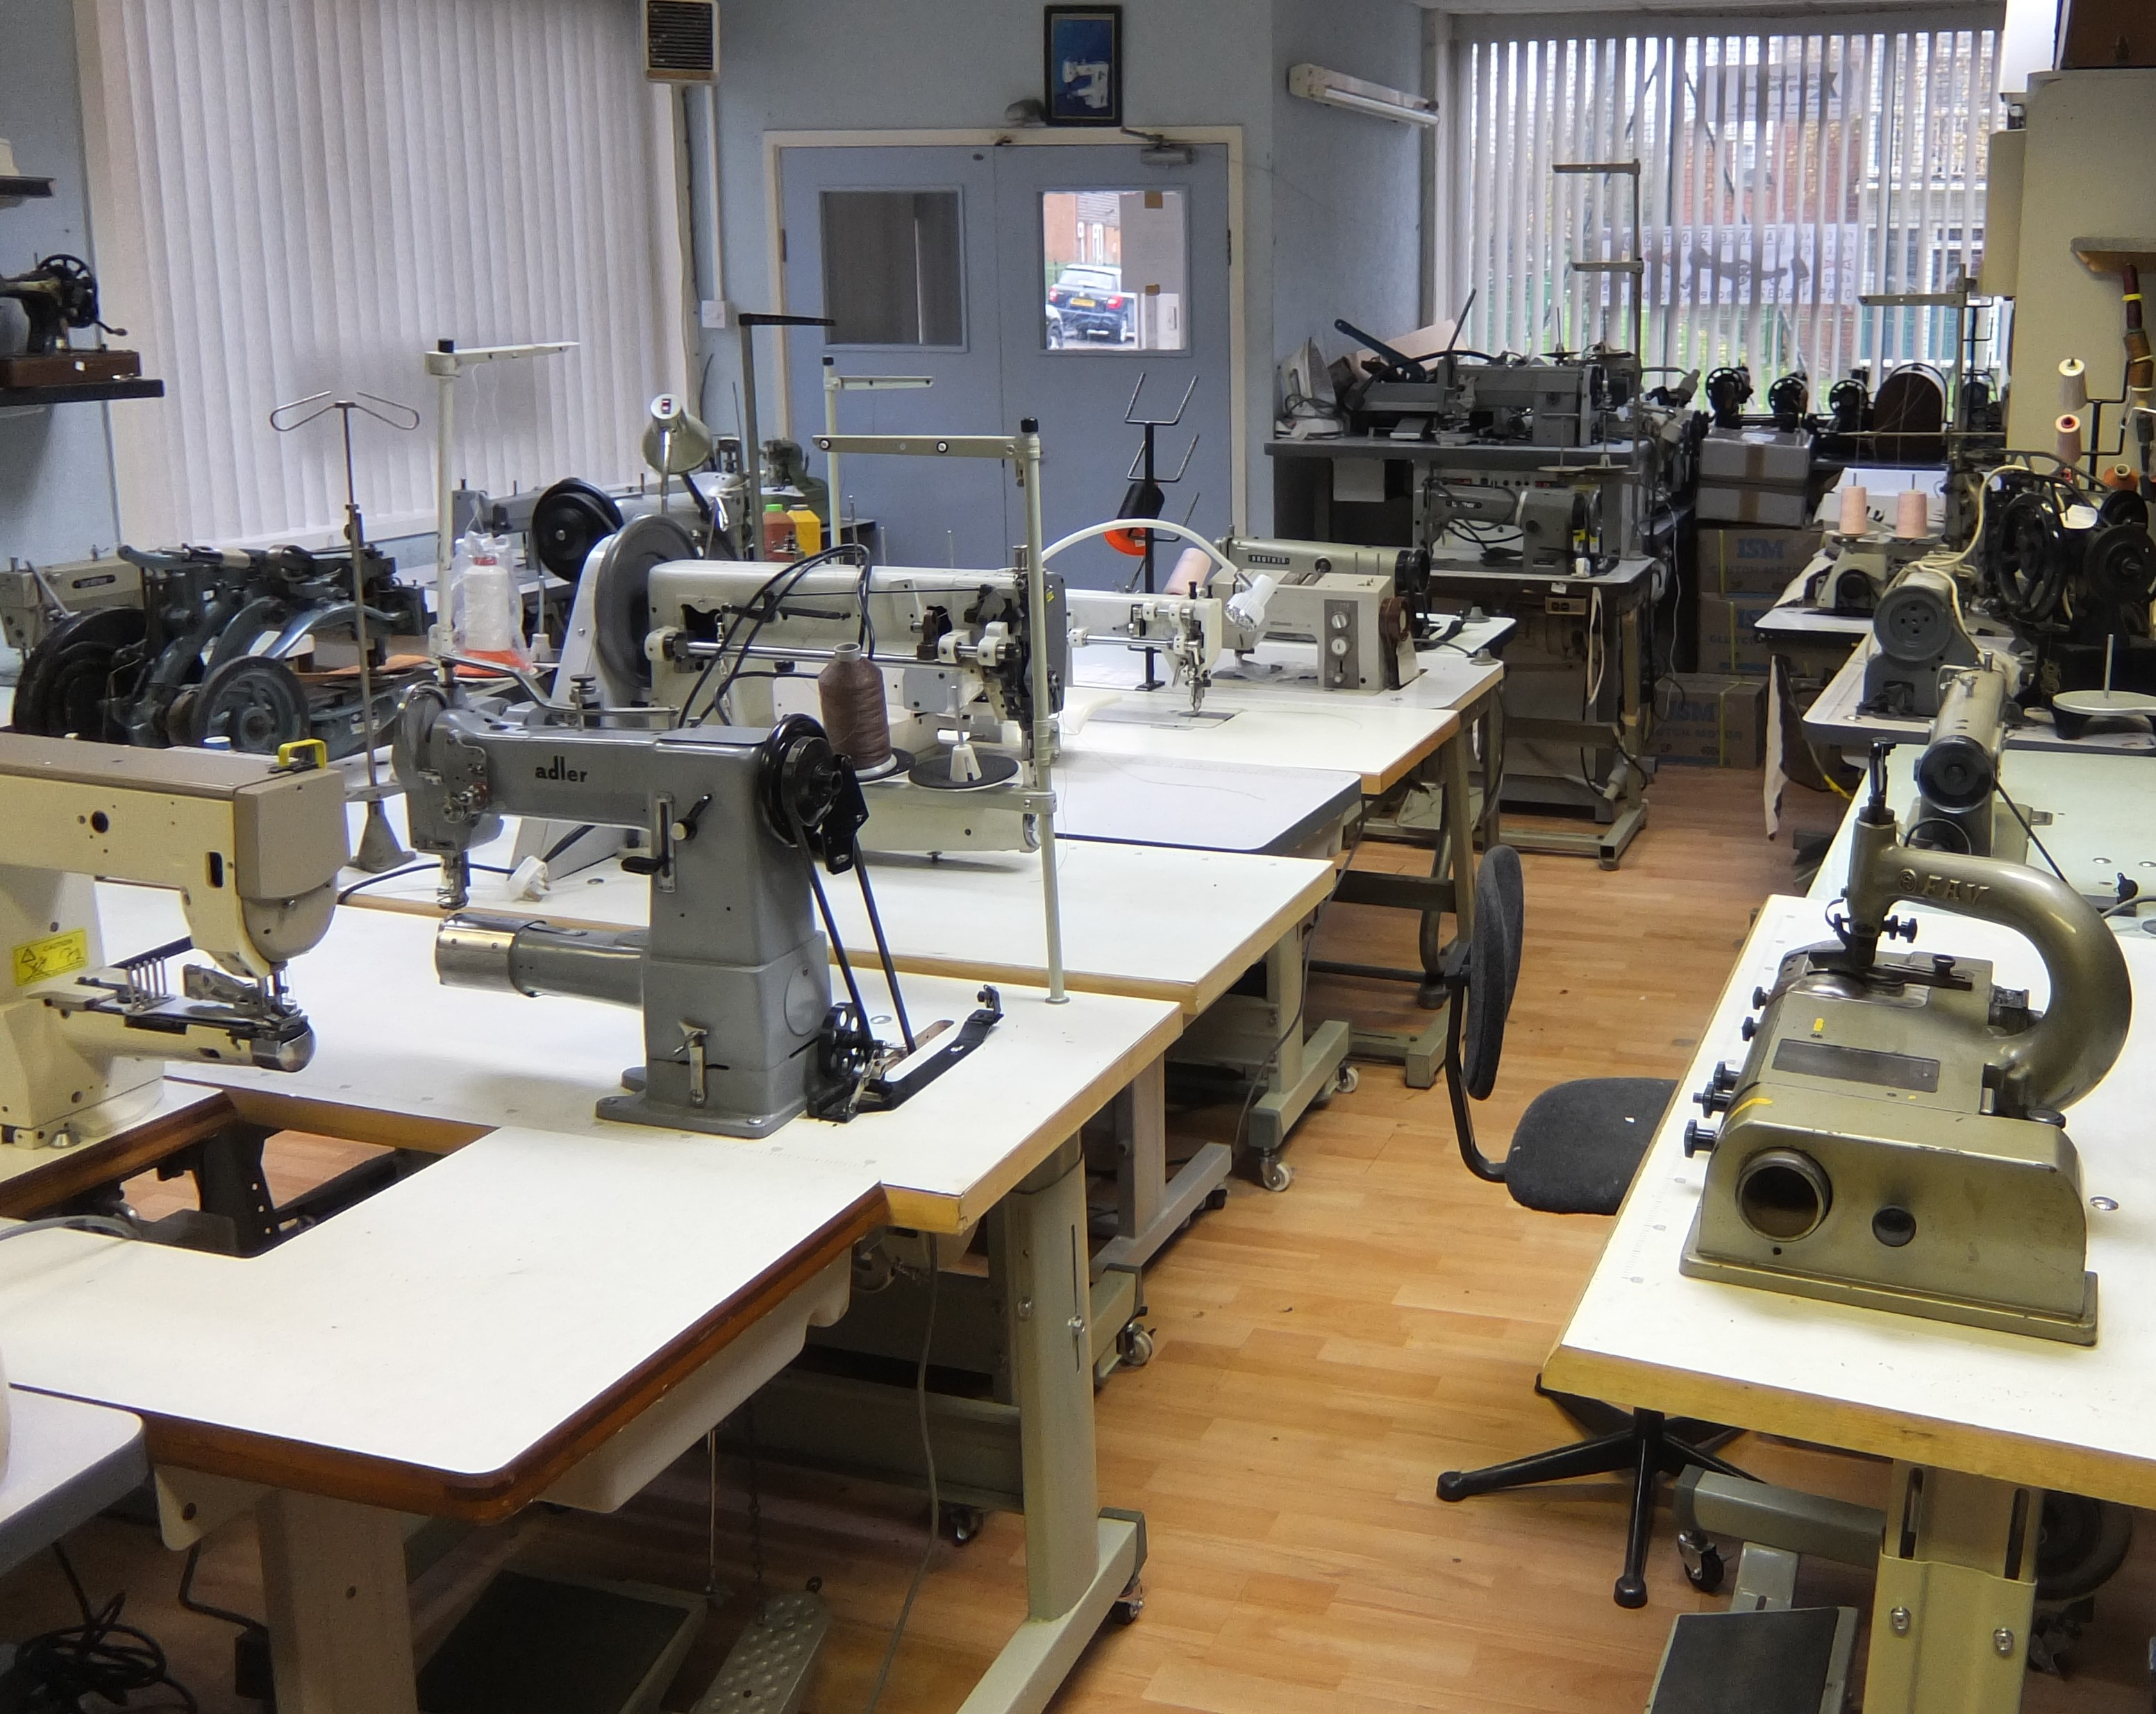 West Midlands sewing machine repair